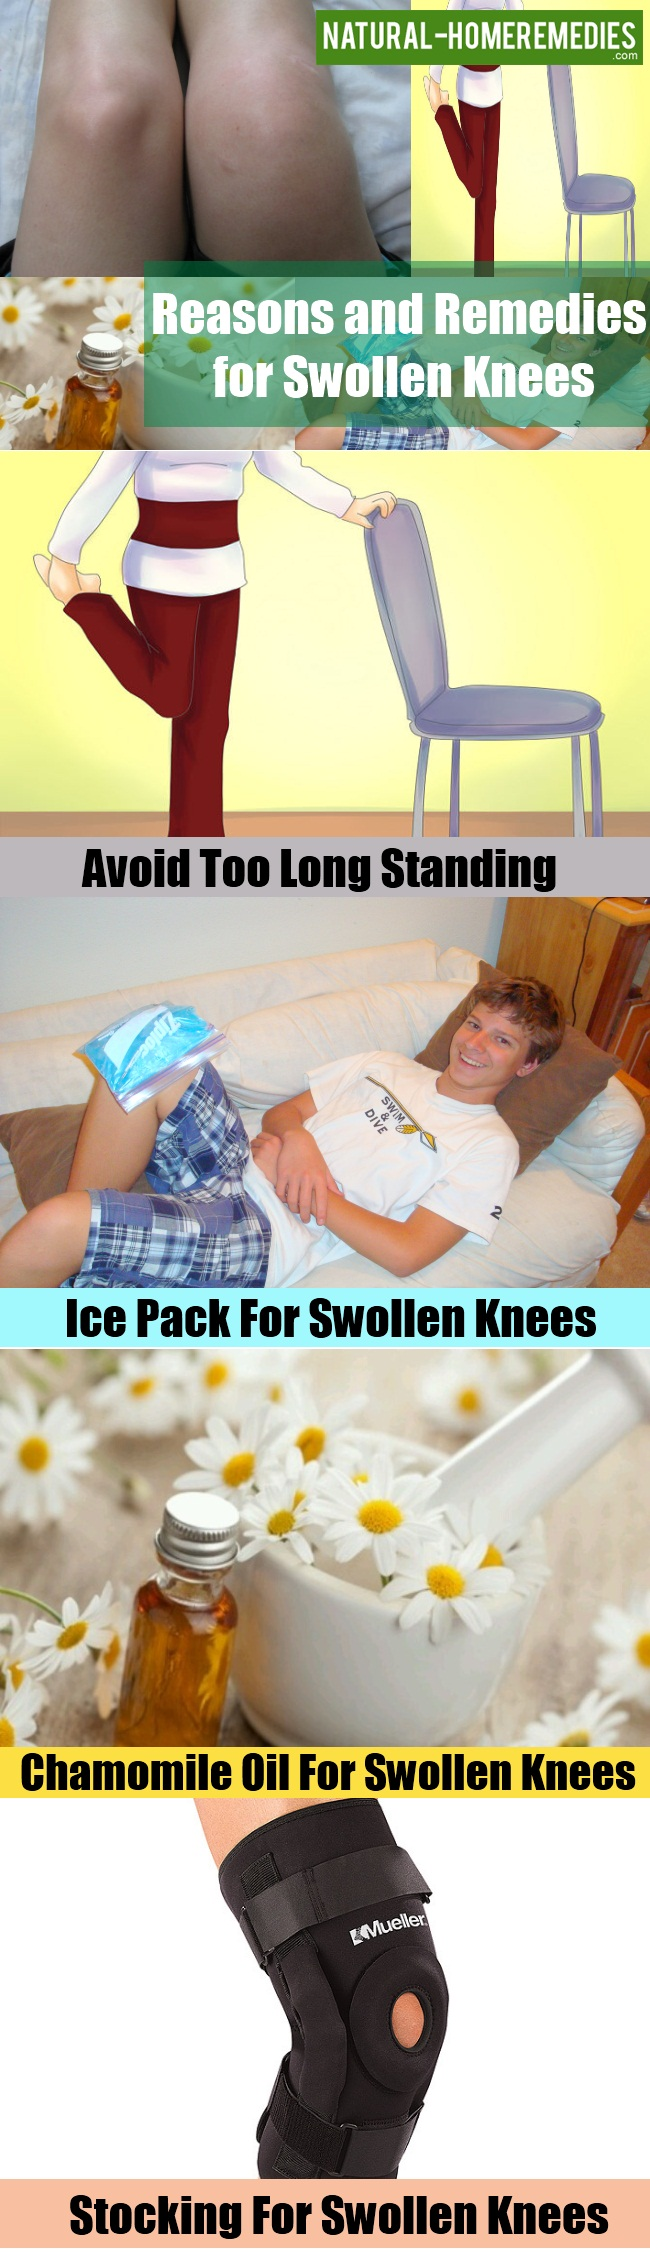 Remedies for Swollen Knees